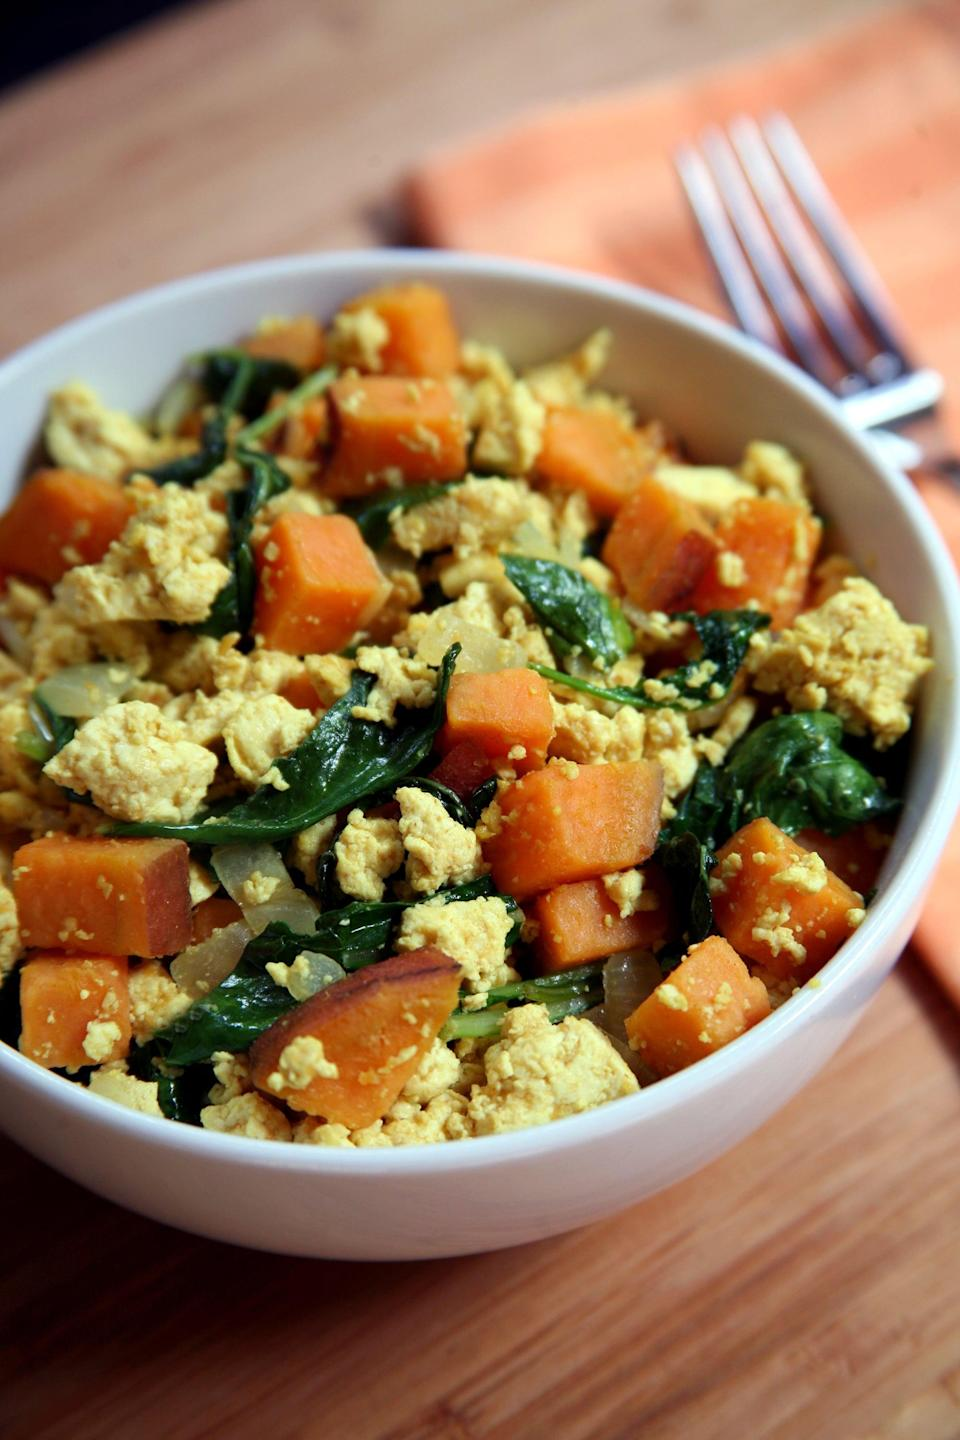 """<p>This tofu scramble is bursting with an addictive savory-sweet flavor, and made with tofu, kale, and sweet potatoes. It tastes amazing on its own or use it as a wrap filling.</p> <p><strong>Get the recipe:</strong> <a href=""""https://www.popsugar.com/fitness/Tofu-Scramble-Kale-Sweet-Potatoes-35566619"""" class=""""link rapid-noclick-resp"""" rel=""""nofollow noopener"""" target=""""_blank"""" data-ylk=""""slk:tofu scramble with kale and sweet potatoes"""">tofu scramble with kale and sweet potatoes</a></p>"""